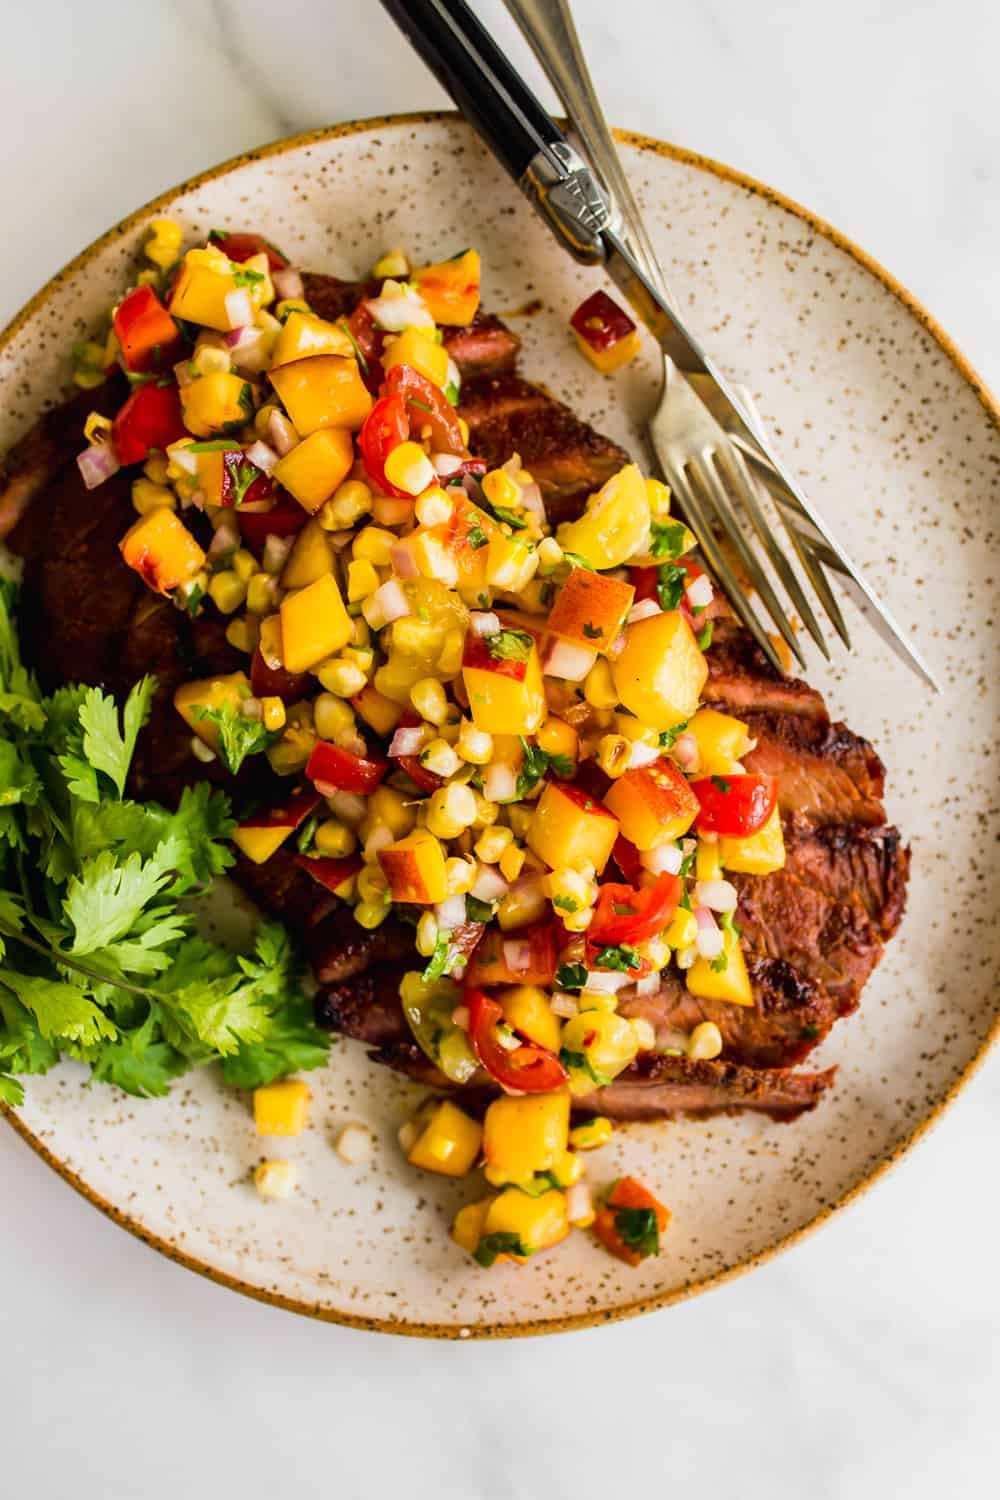 Close up of a grilled steak on a plate topped with peach salsa